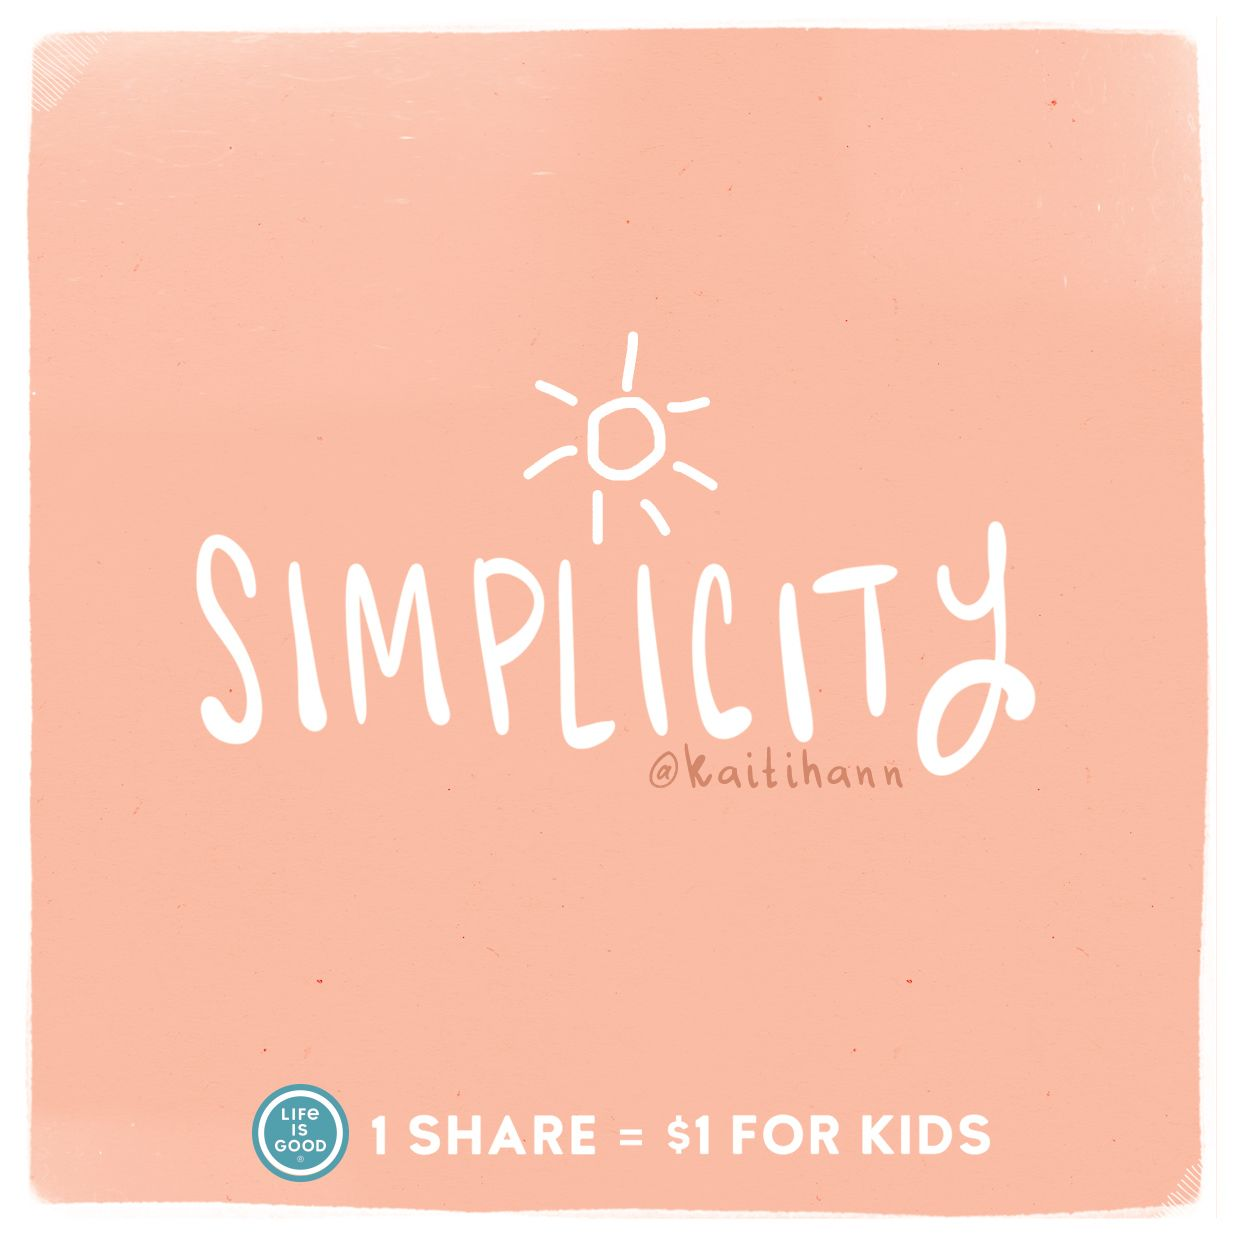 Something Good Artwork Superpowers Simplicity